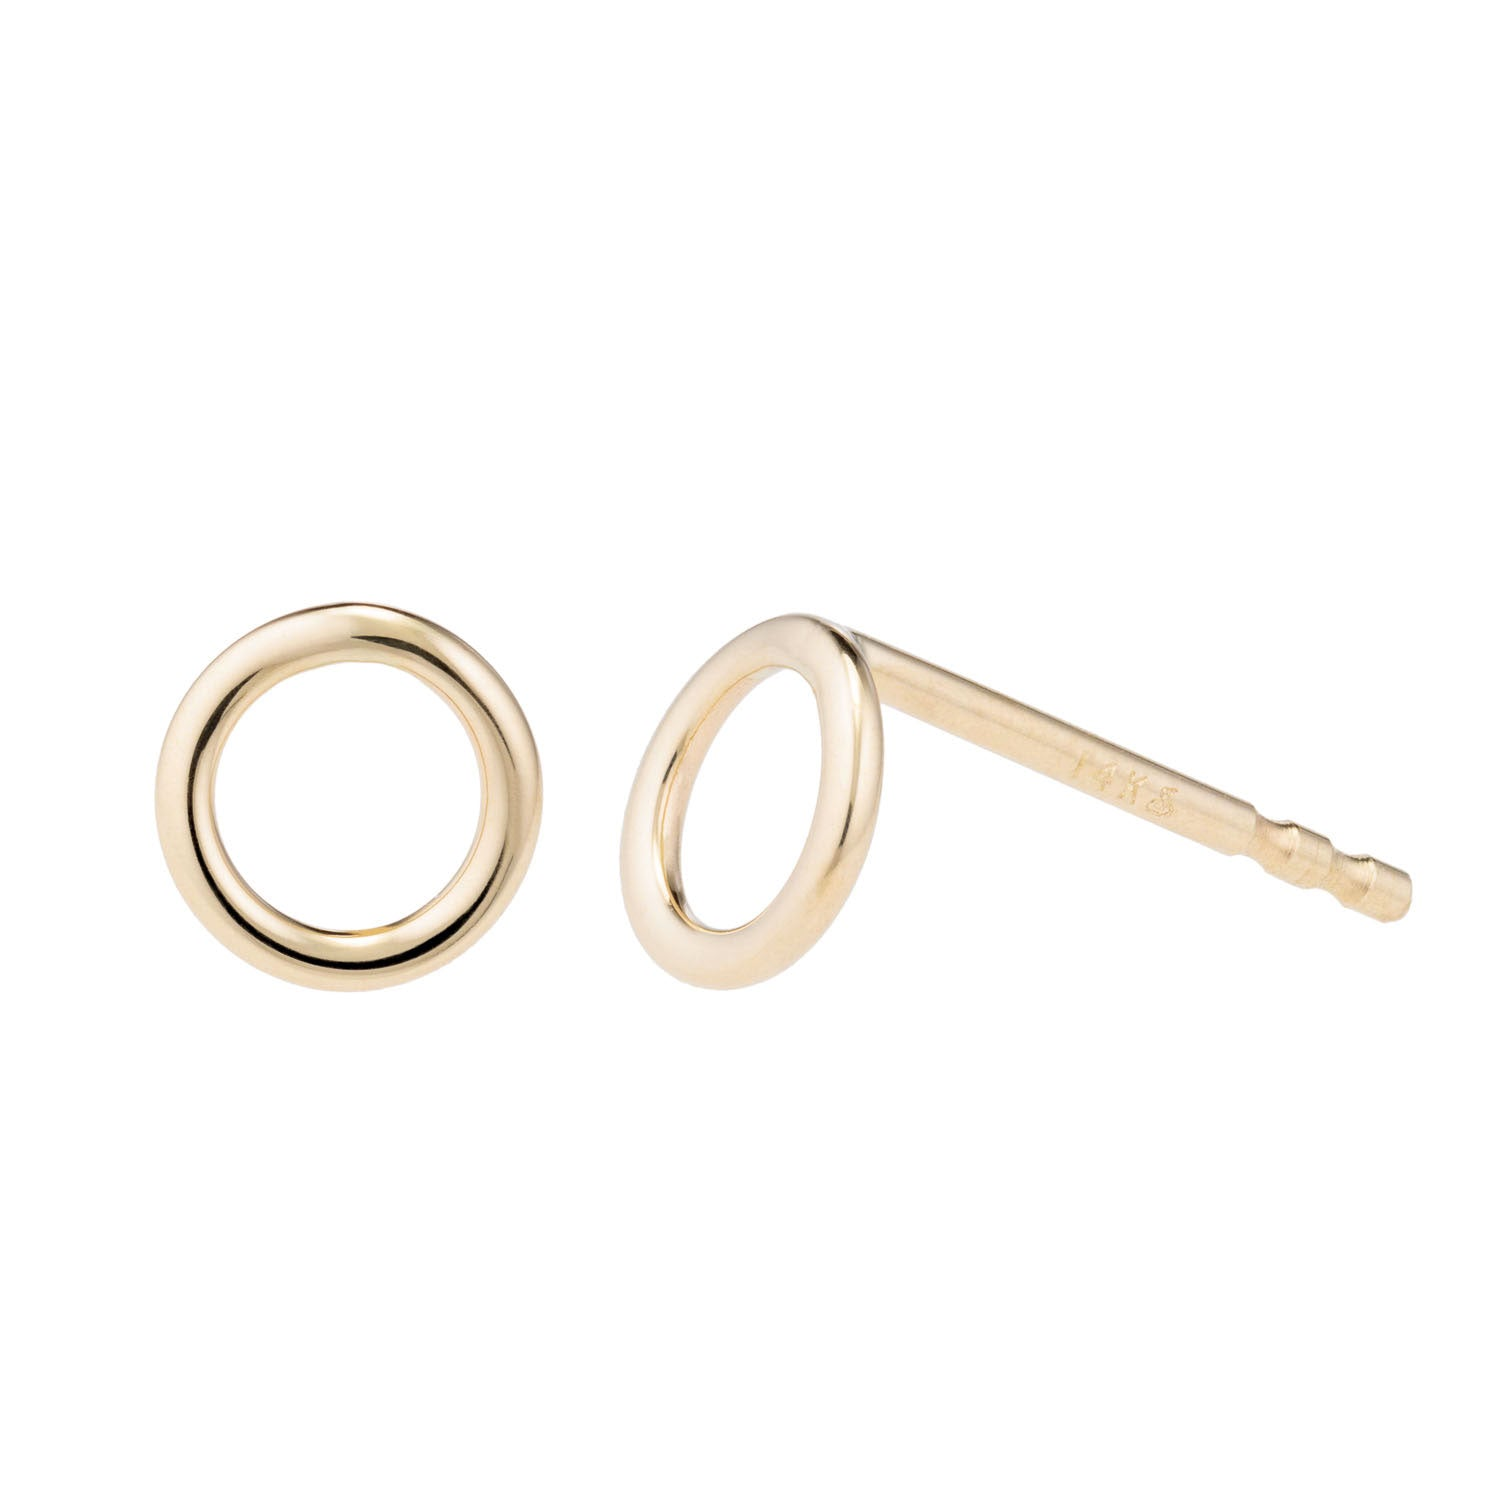 14k Yellow gold tiny circle shaped stud earrings - o - by Valerie Madison